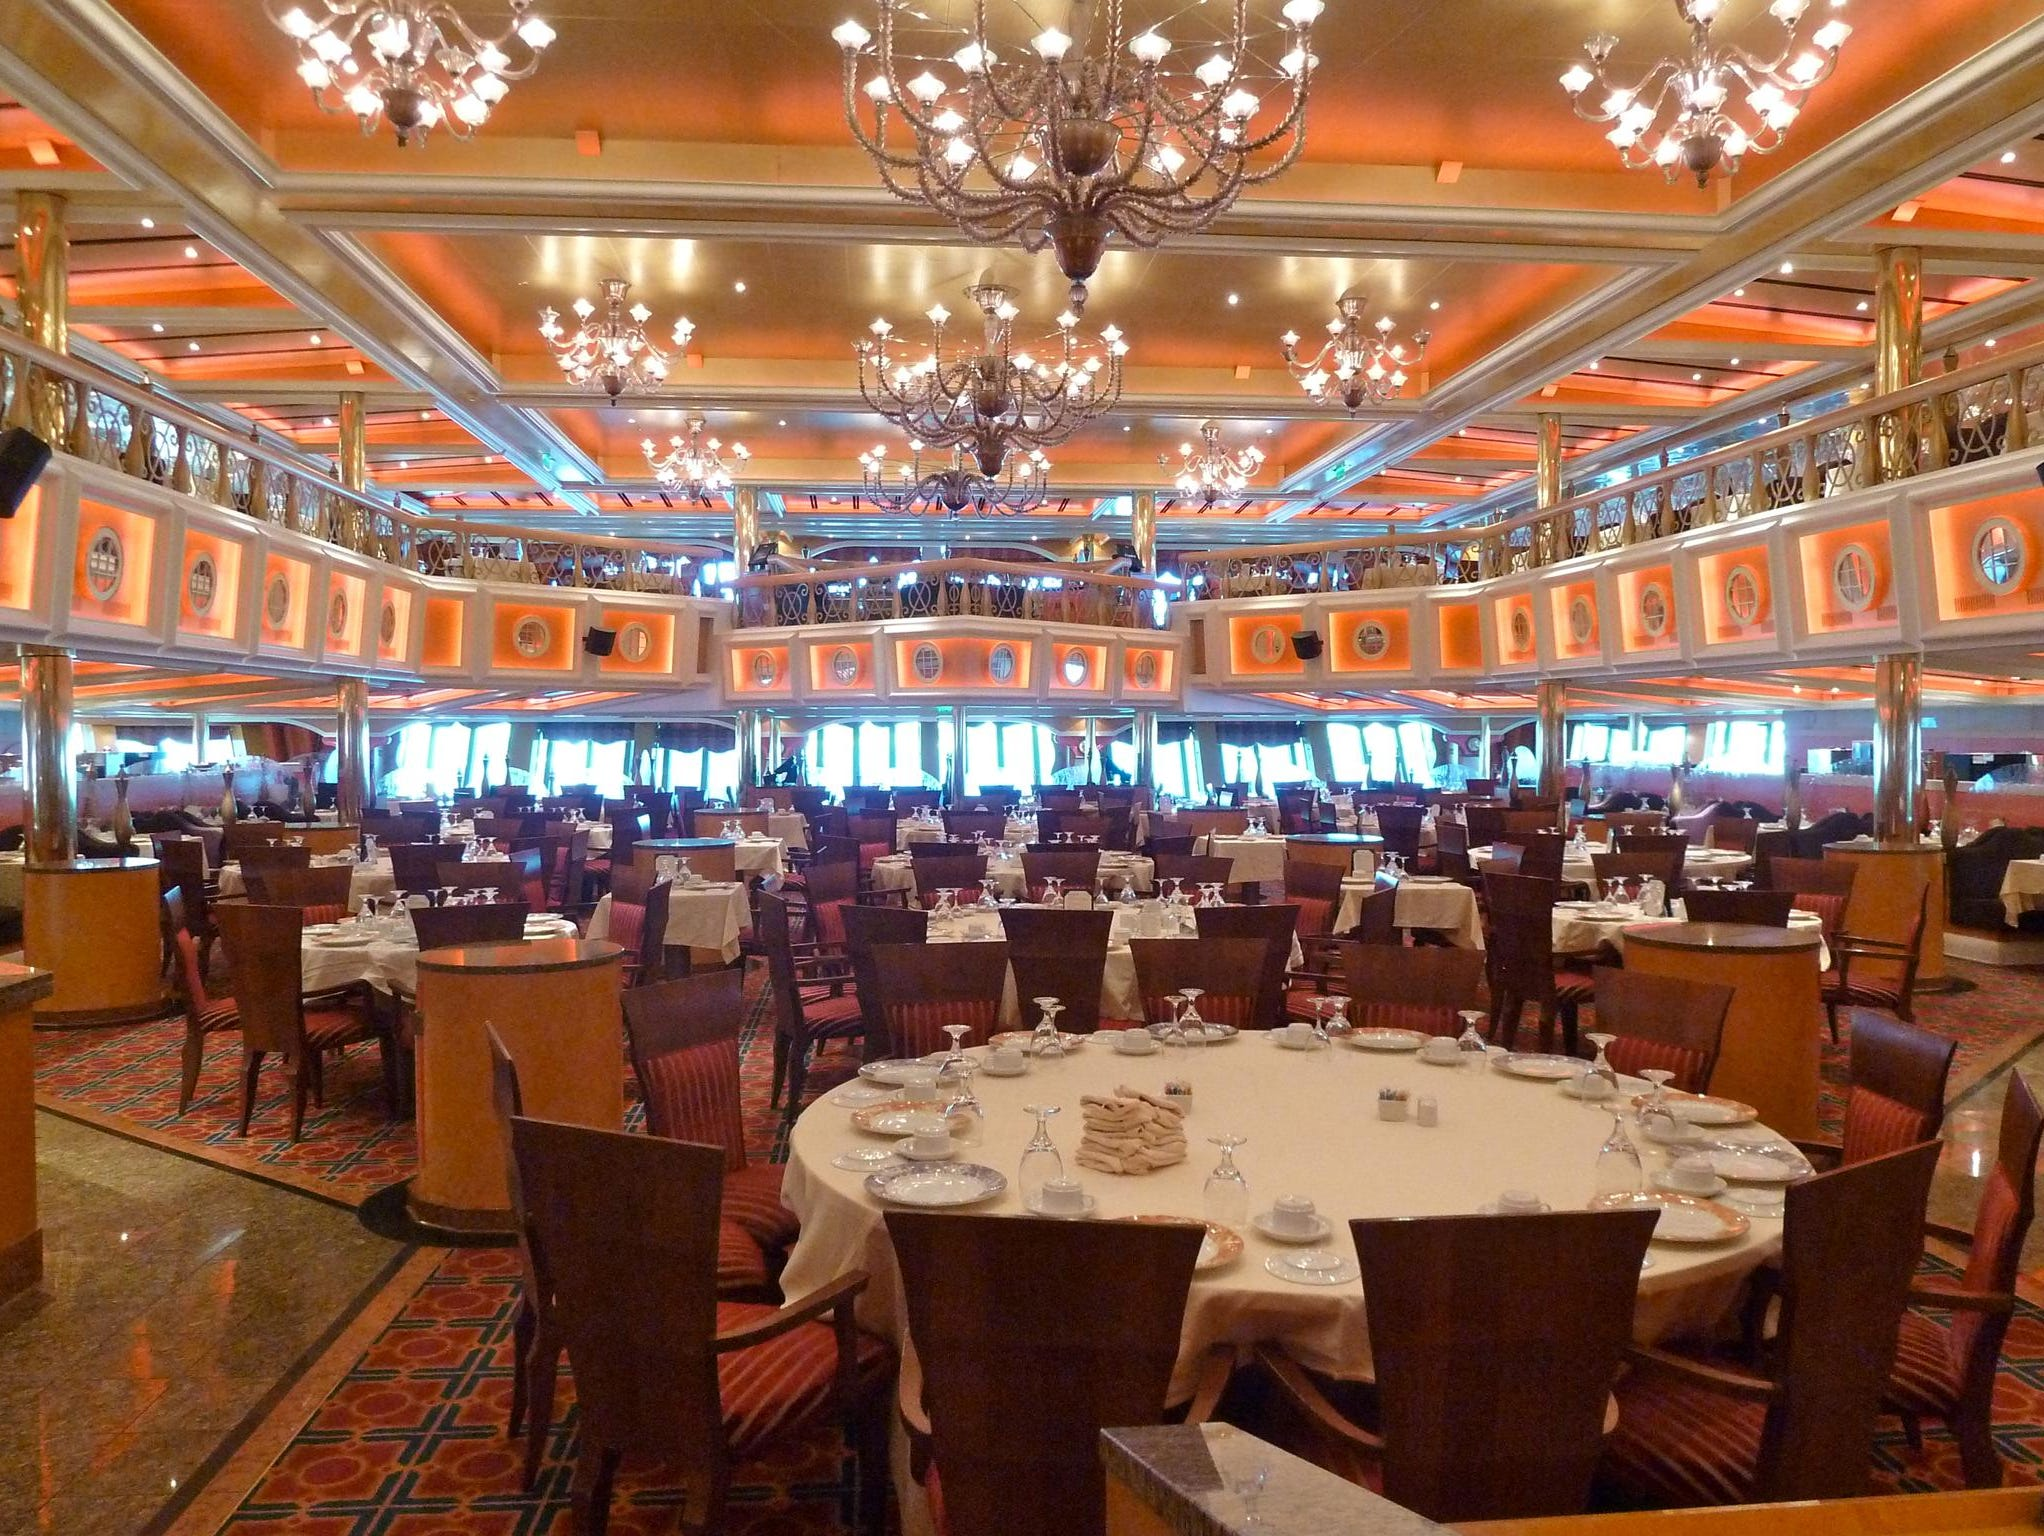 Here is a view of the Washington Dining Room from a Deck 3 perspective.